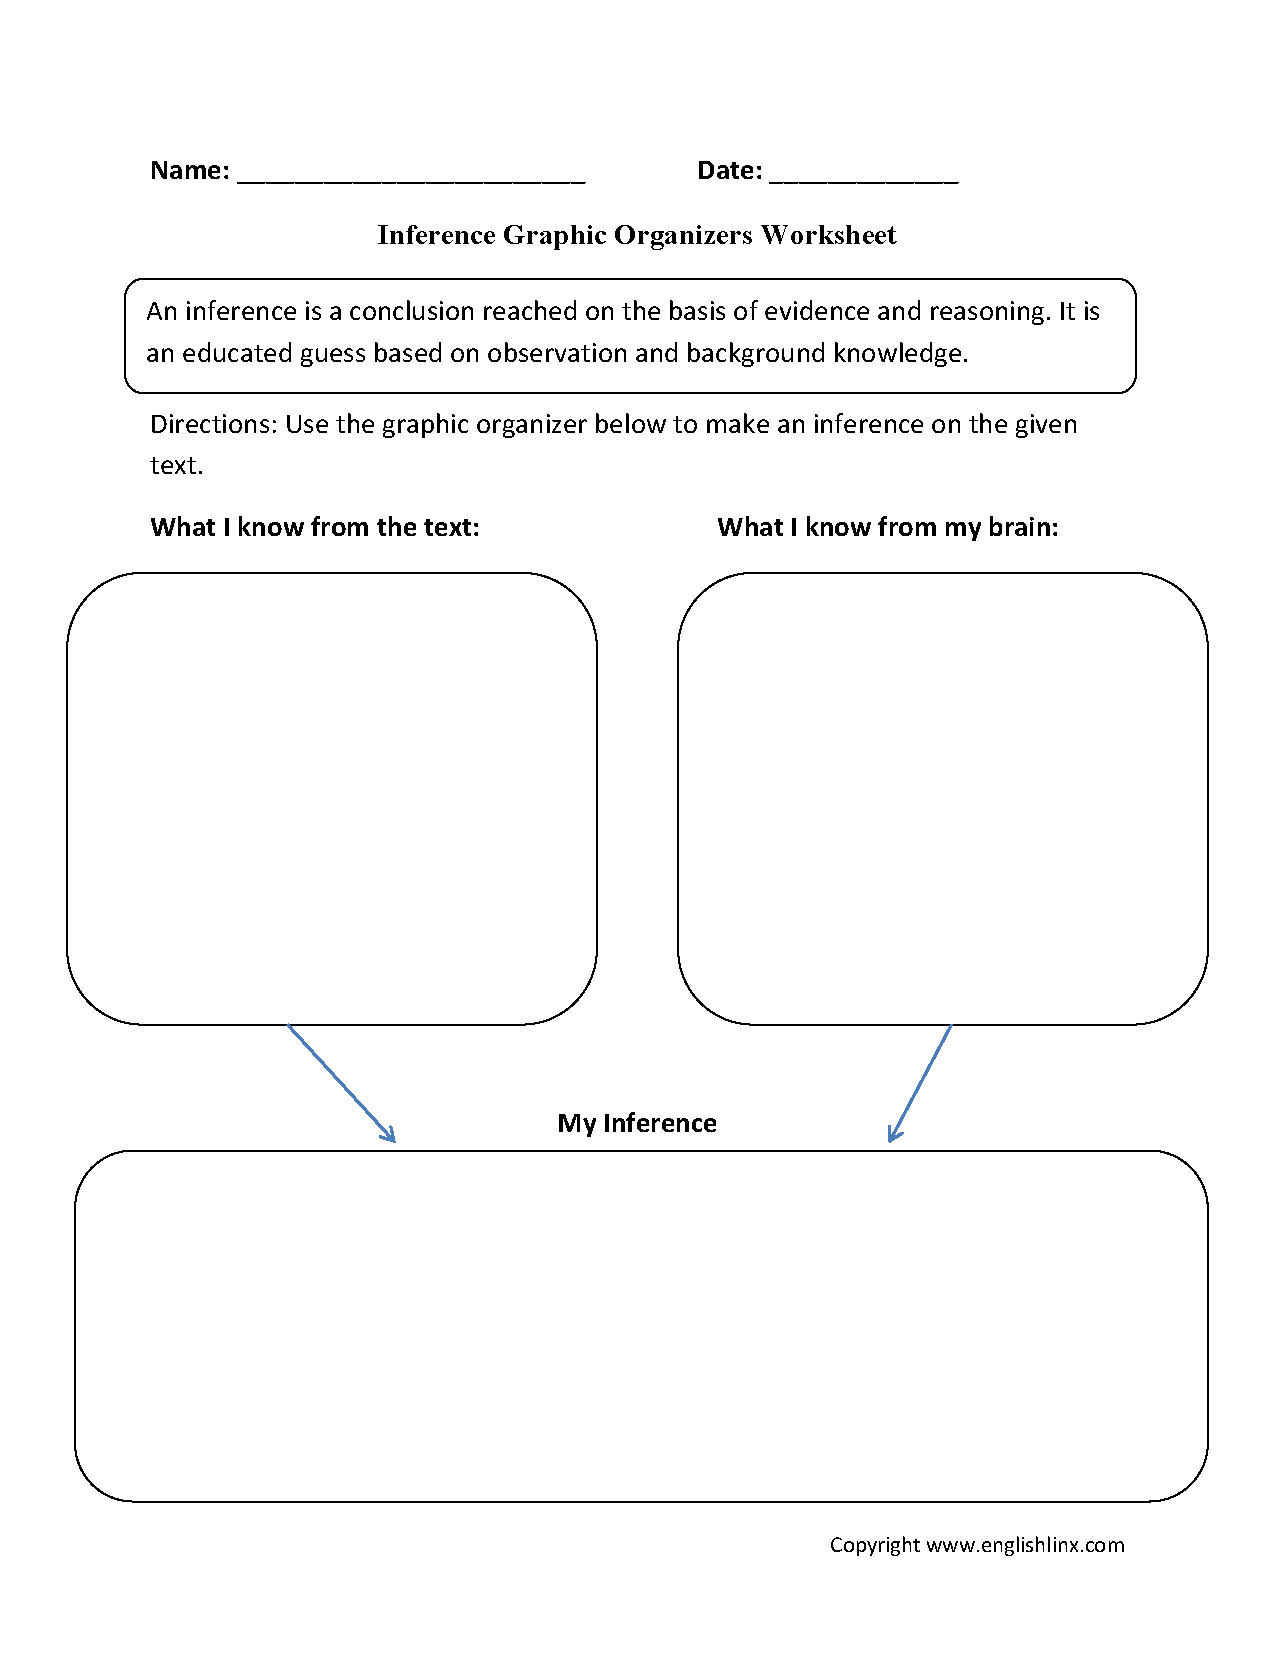 worksheet Drawing Conclusions Worksheets inference graphic organizers worksheets eng writing pinterest these are great for working with use th